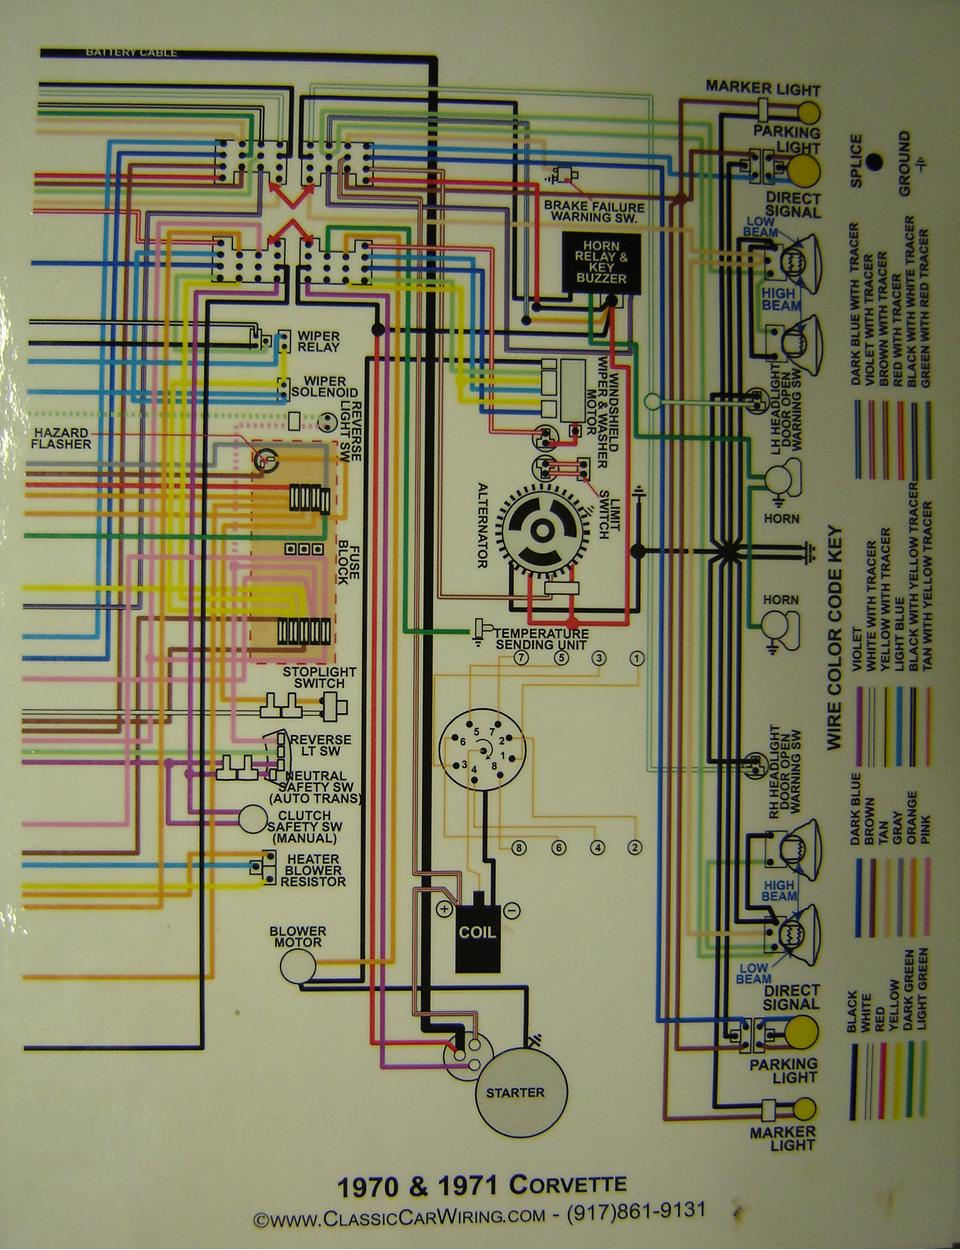 1970 71 corvette color wiring diagram B chevy diagrams 1970 corvette wiring diagram at mifinder.co